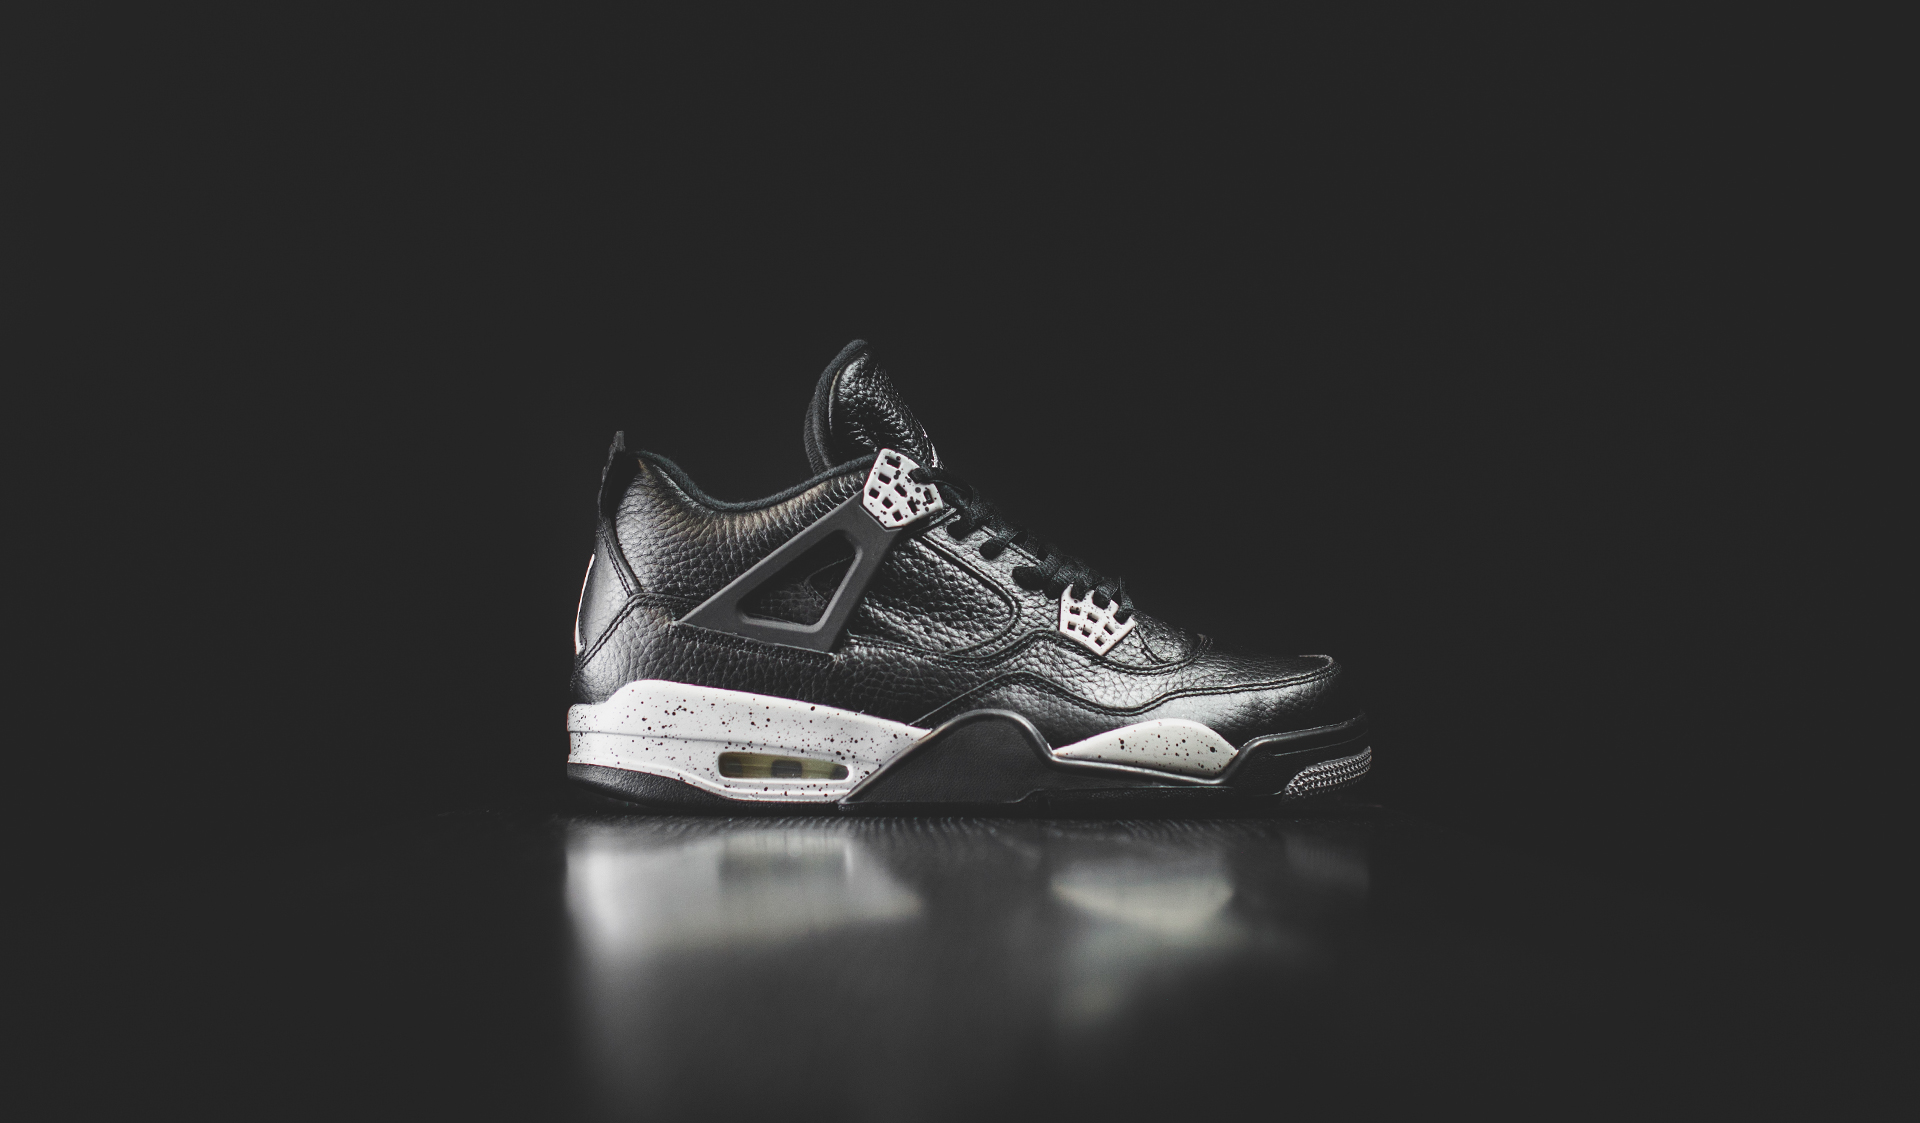 Air Jordan IV Retro Full HD Wallpaper And Background Image